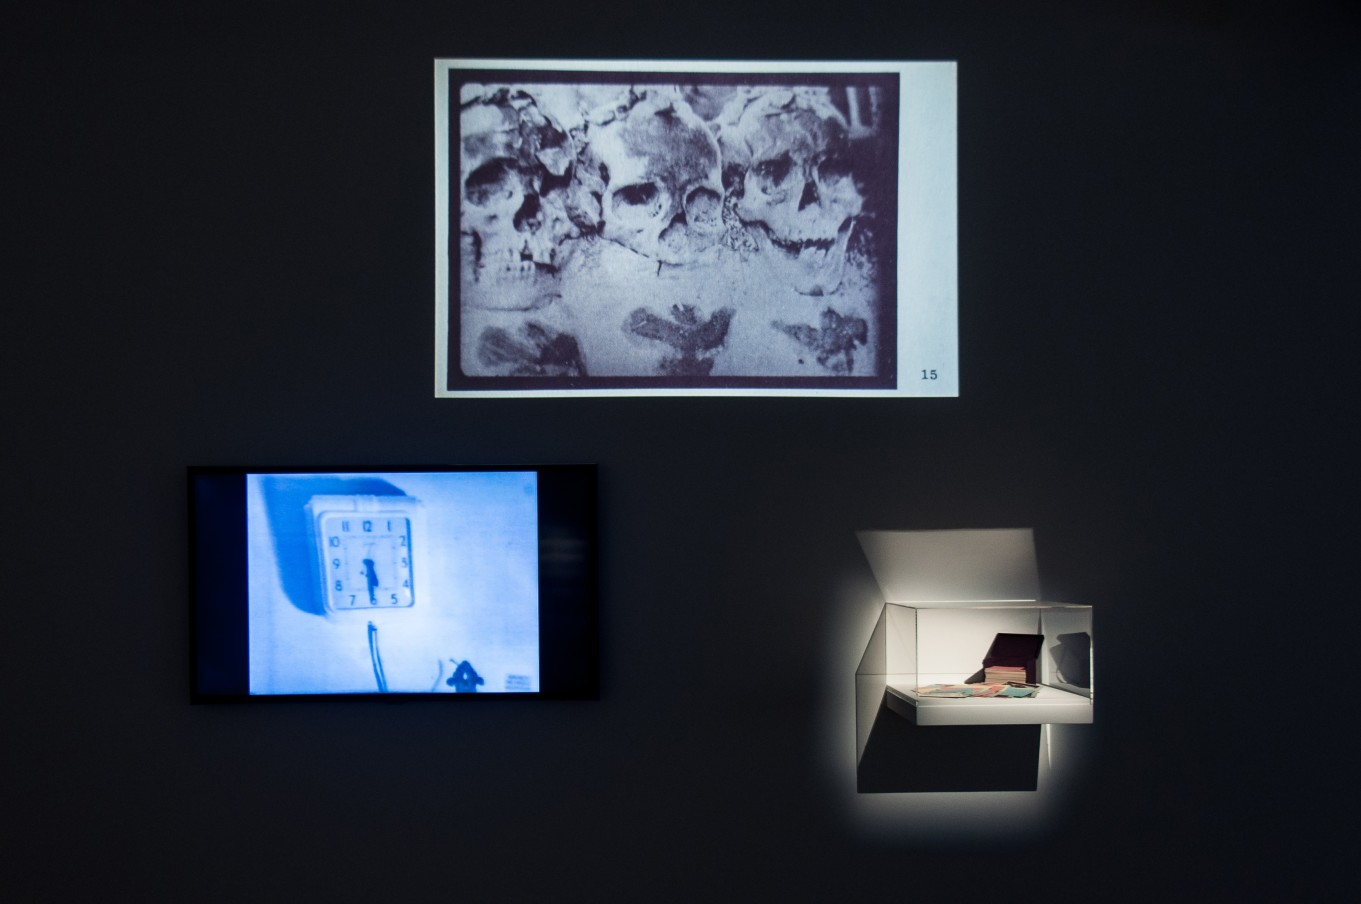 Carolee Schneemann, ABC- We Print Anything - In the Cards, 1977/1992, photograph, printed card stock, archival box, signed, filmed performance, projection of cards, 3 x 5 in each card, 3 3/4 x 5 1/4 x 3 3/4 in archival box, Image courtesy of the artist